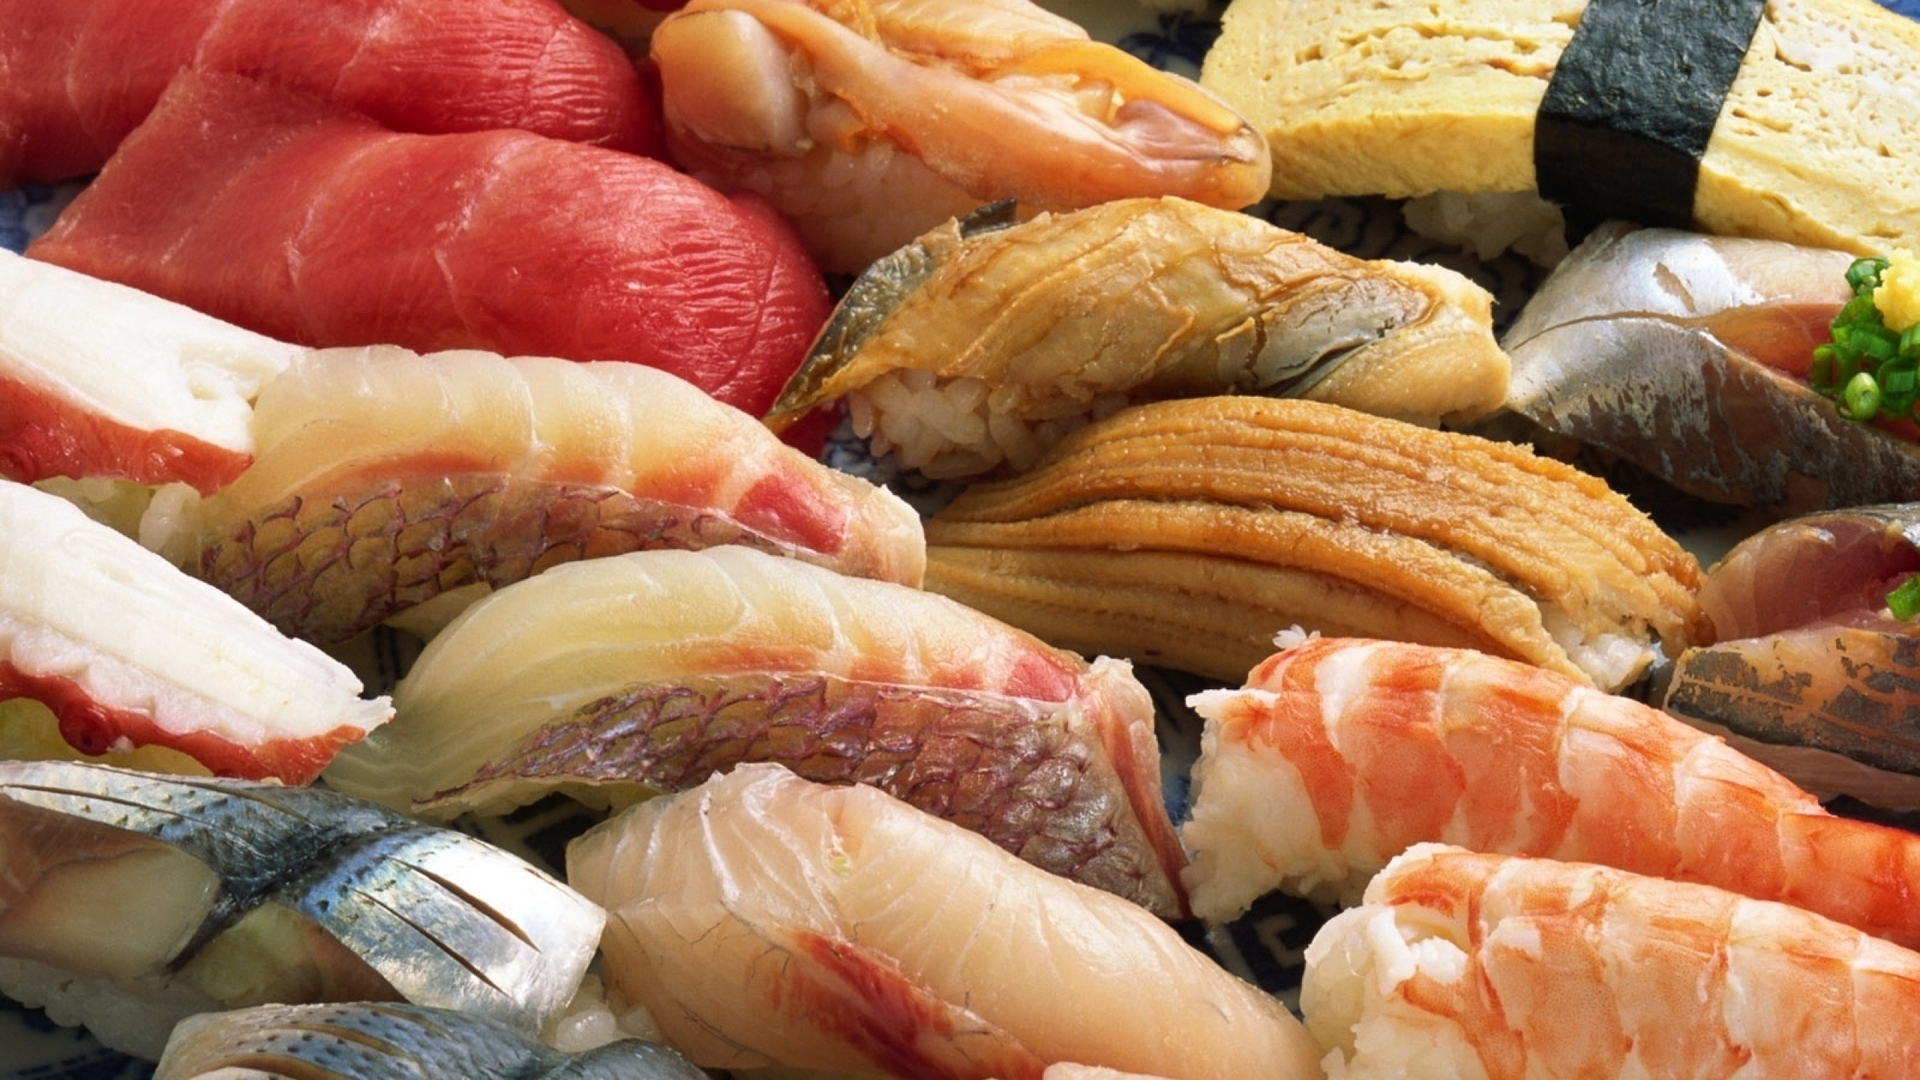 wallpaper.wiki-Food-meat-fish-fat-cooking-1920x1080-PIC-WPB0012218